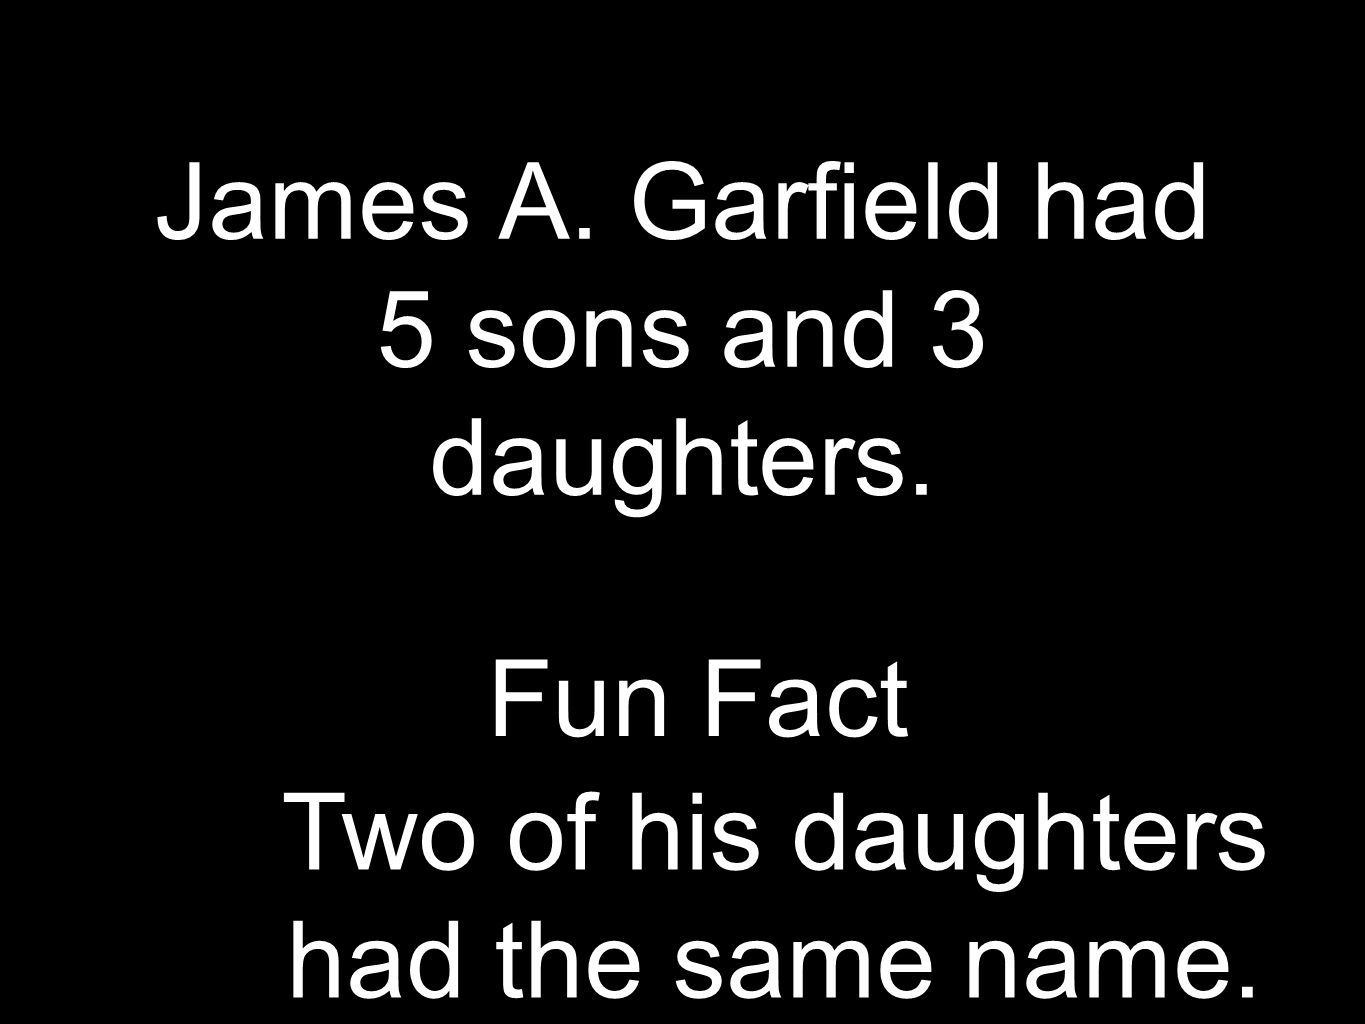 James A. Garfield had 5 sons and 3 daughters. Two of his daughters had the same name. Fun Fact